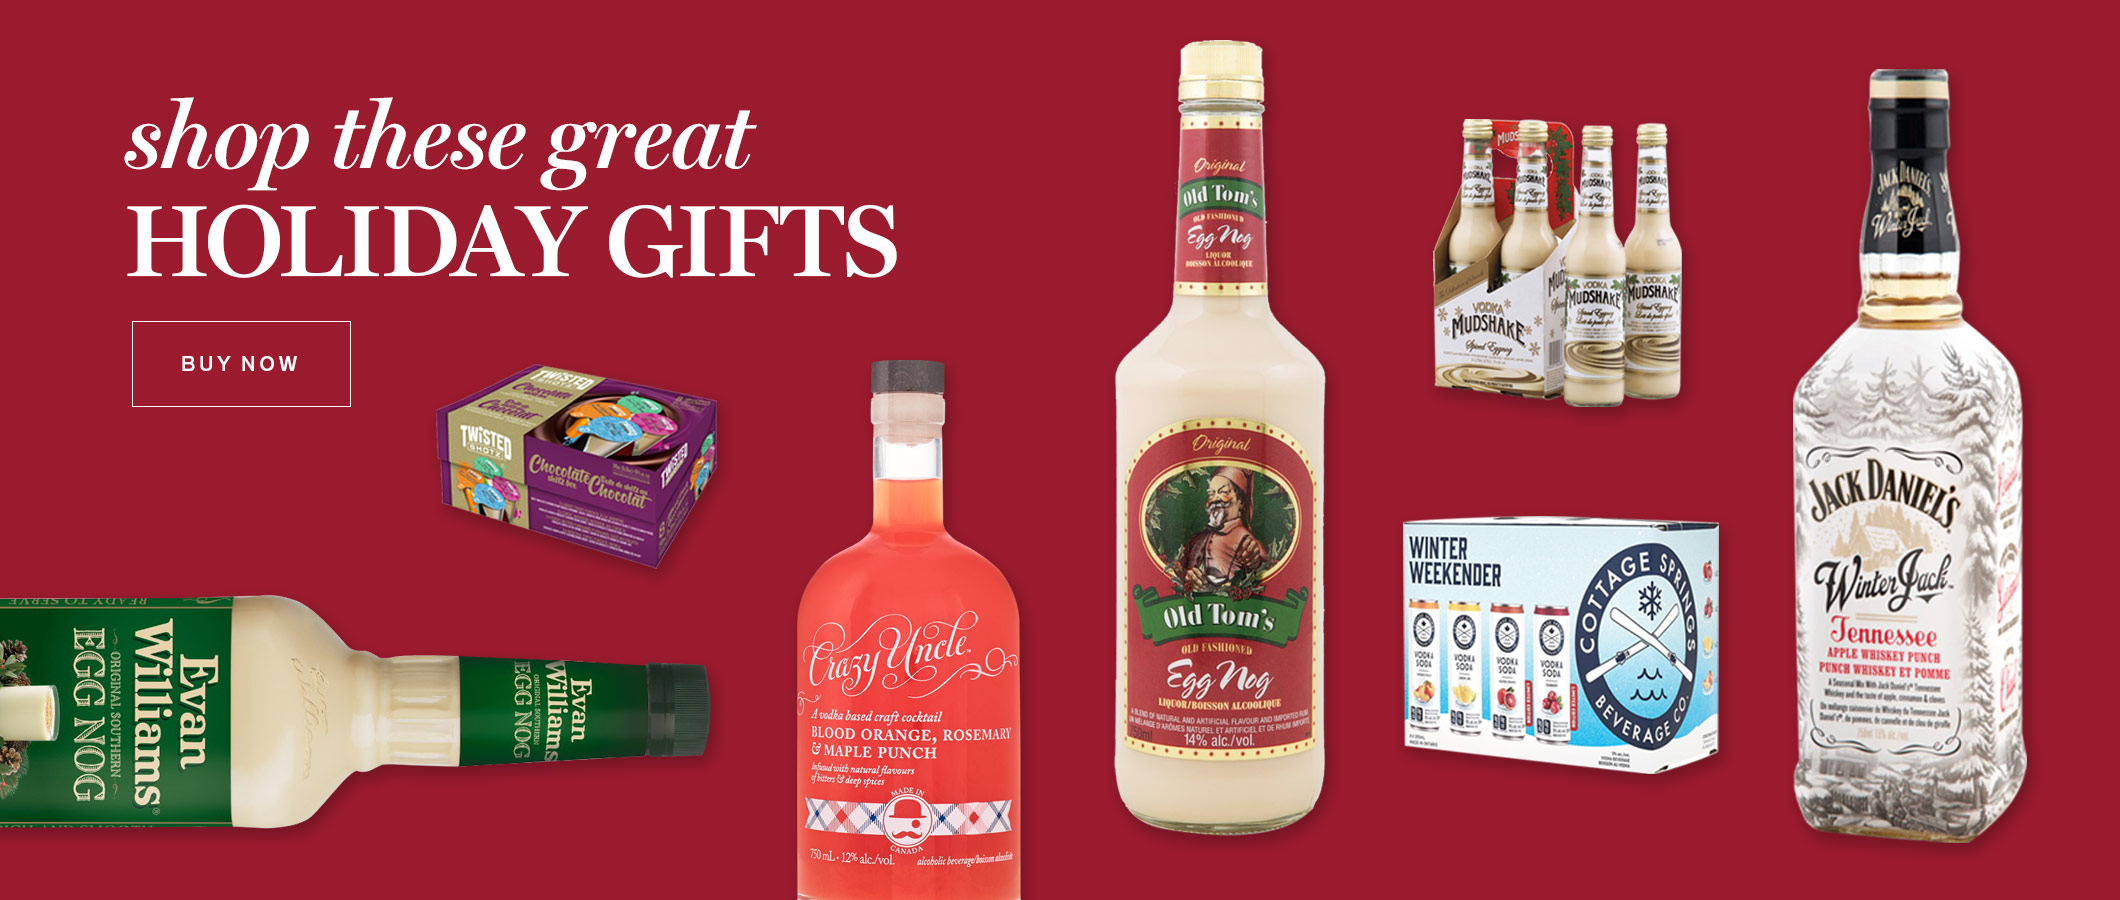 shop these great HOLIDAY GIFTS